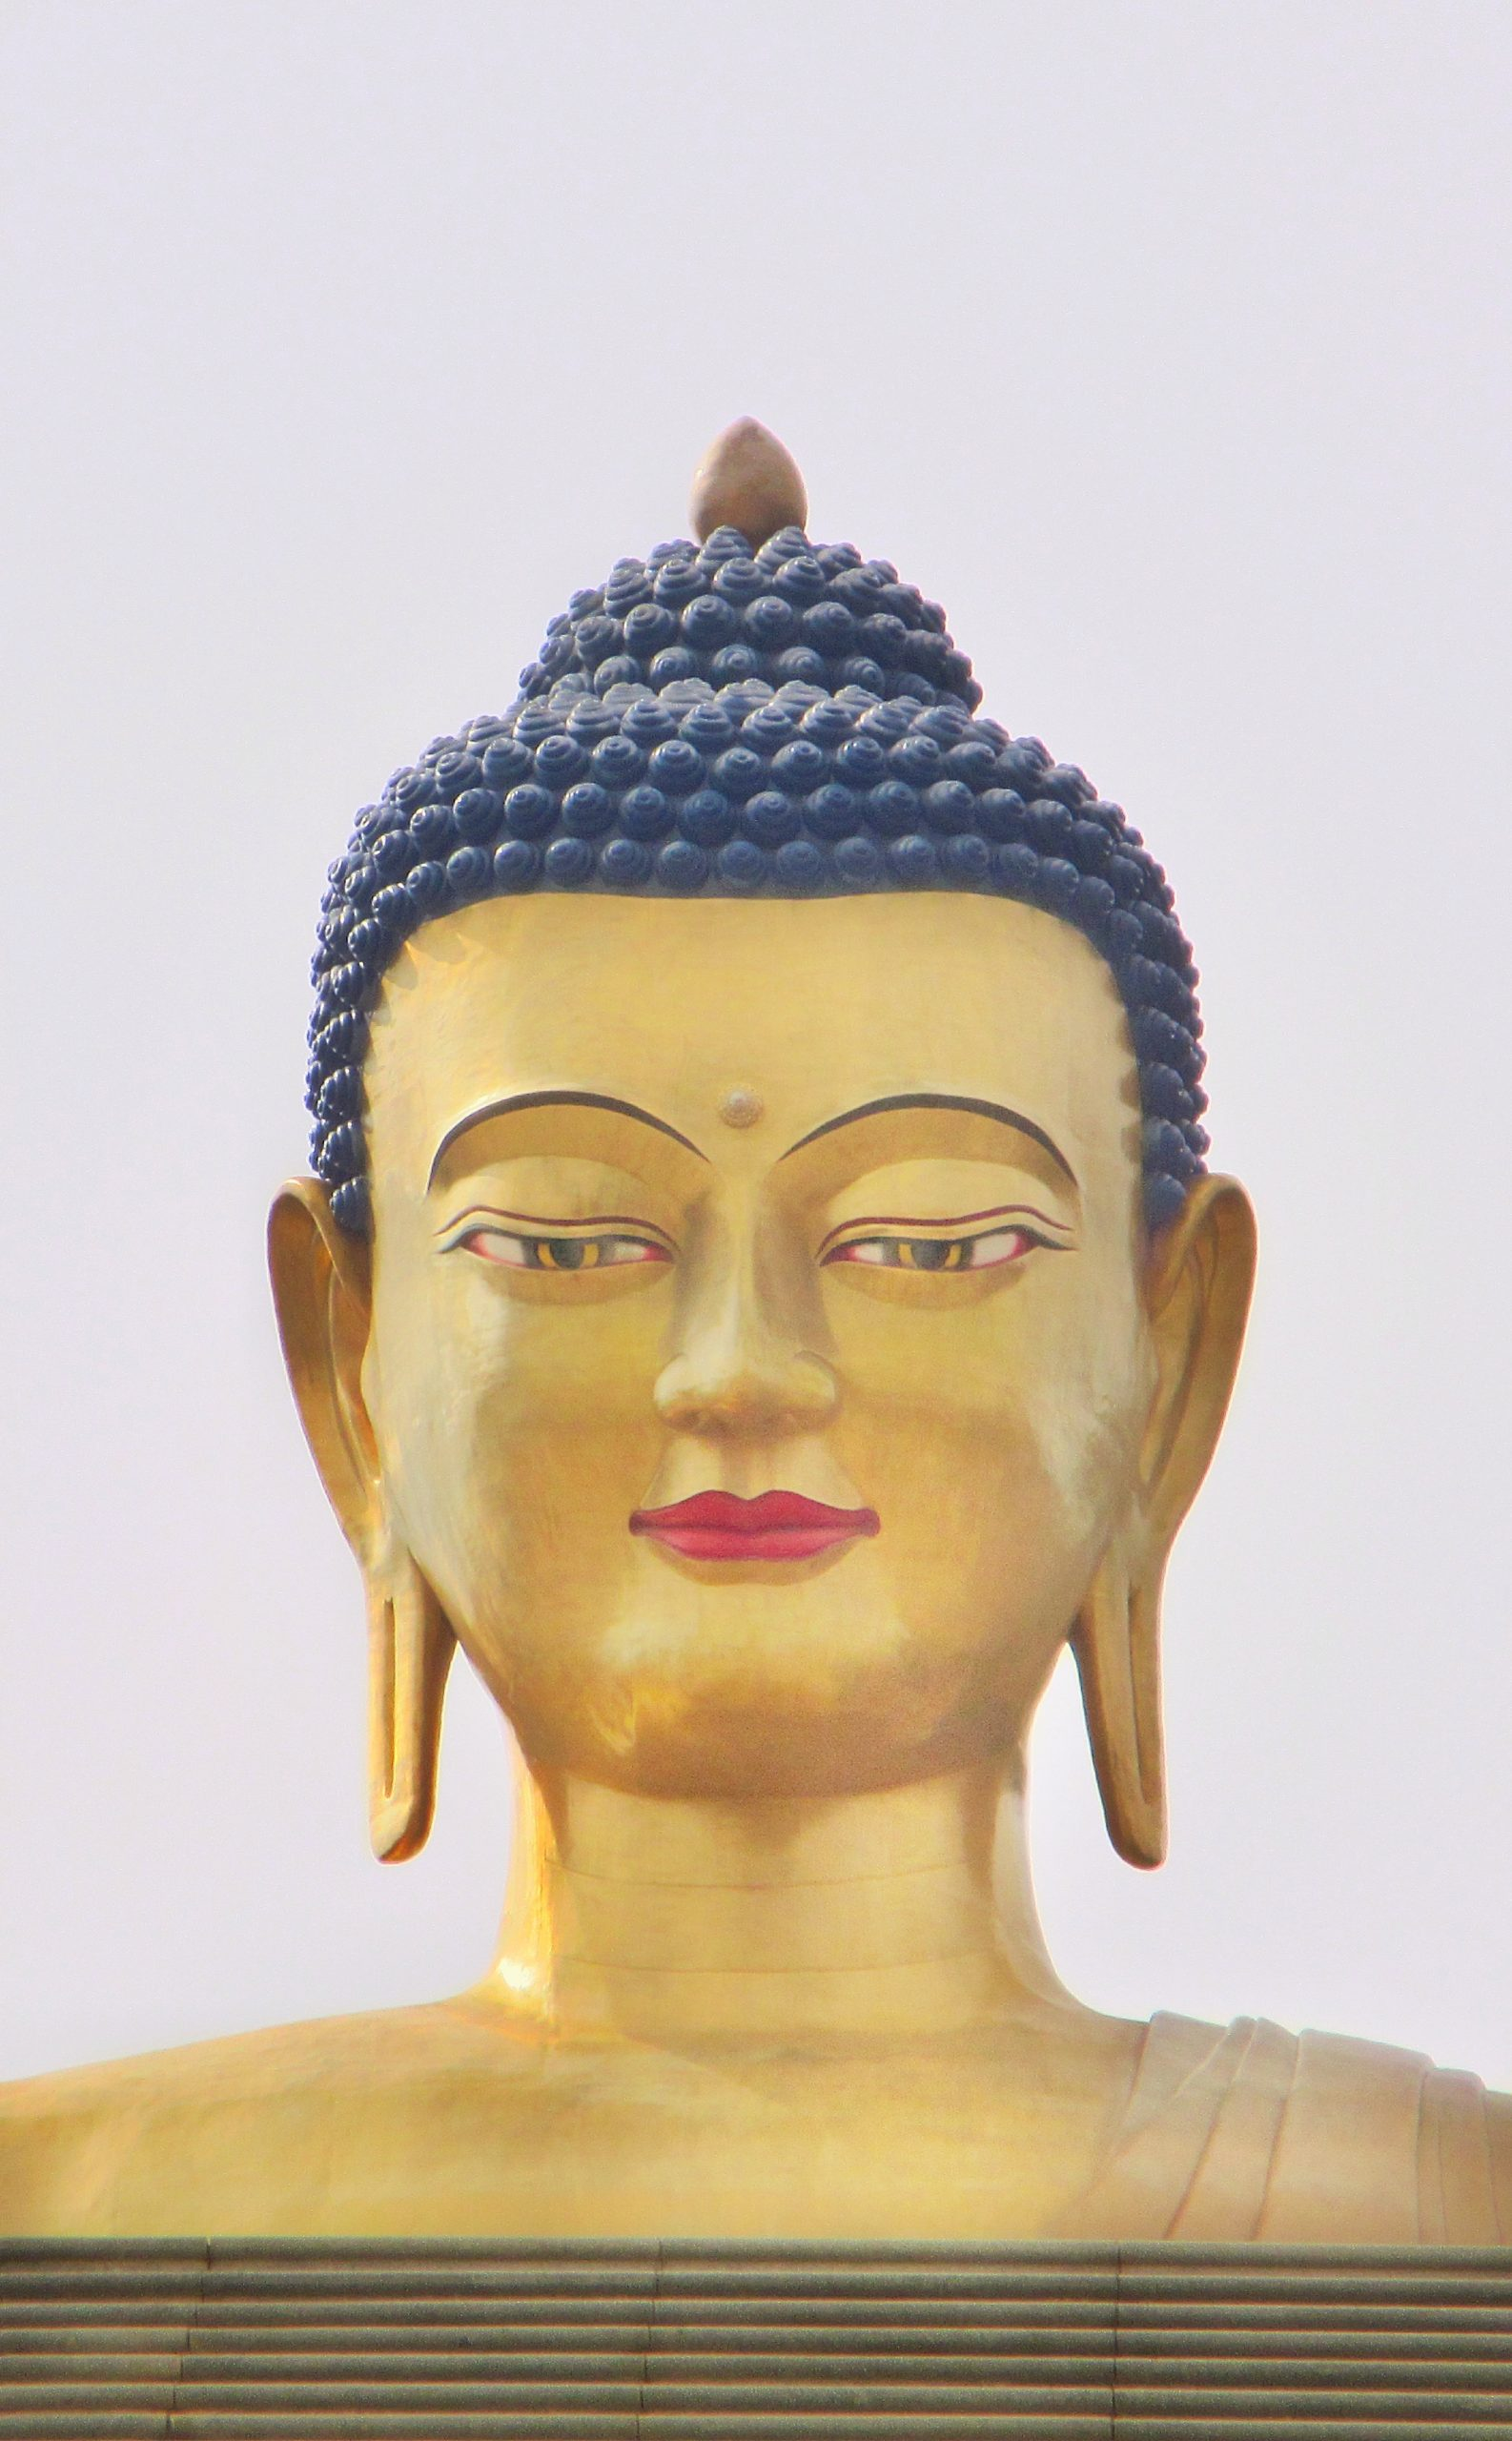 An idol of lord Buddha